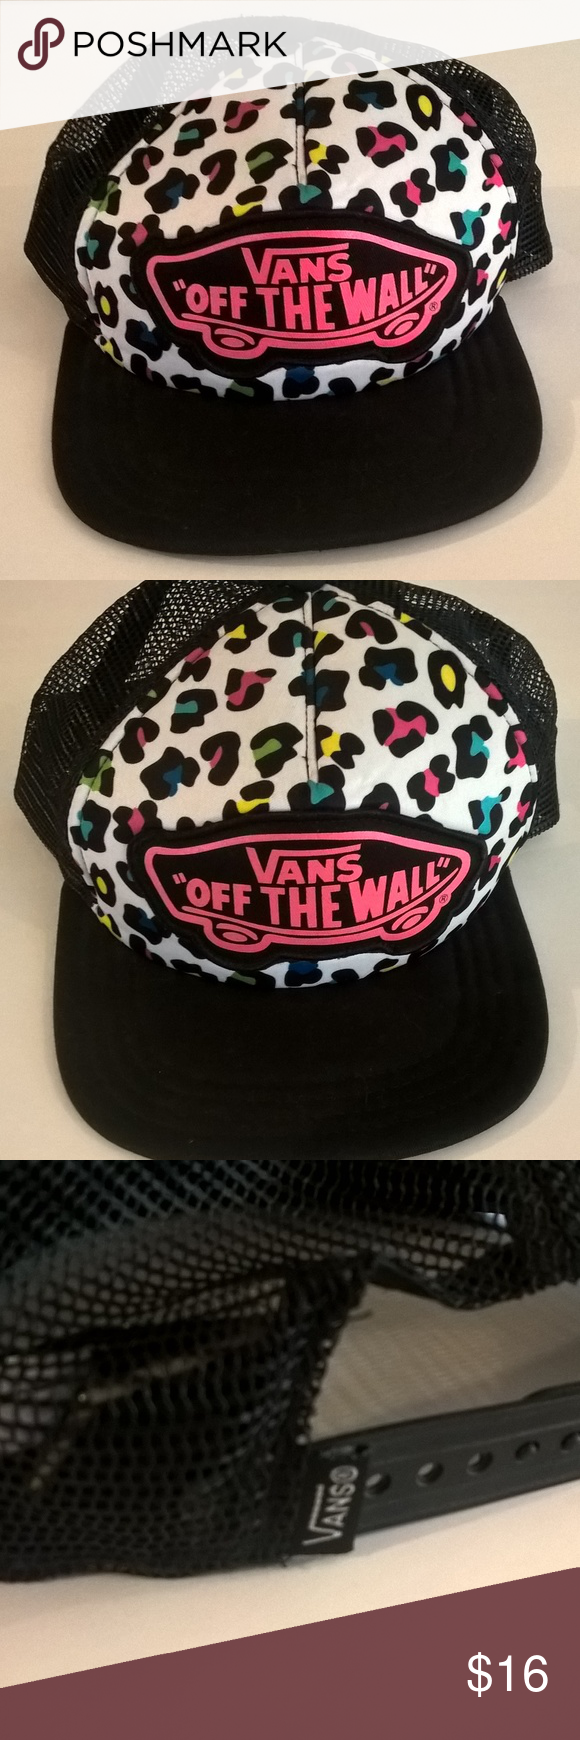 vans hat womens black and pink animal print womens vans off the wall cap  adjustable black and pink trucker hat. excellent preowned condition. d4c201f2b